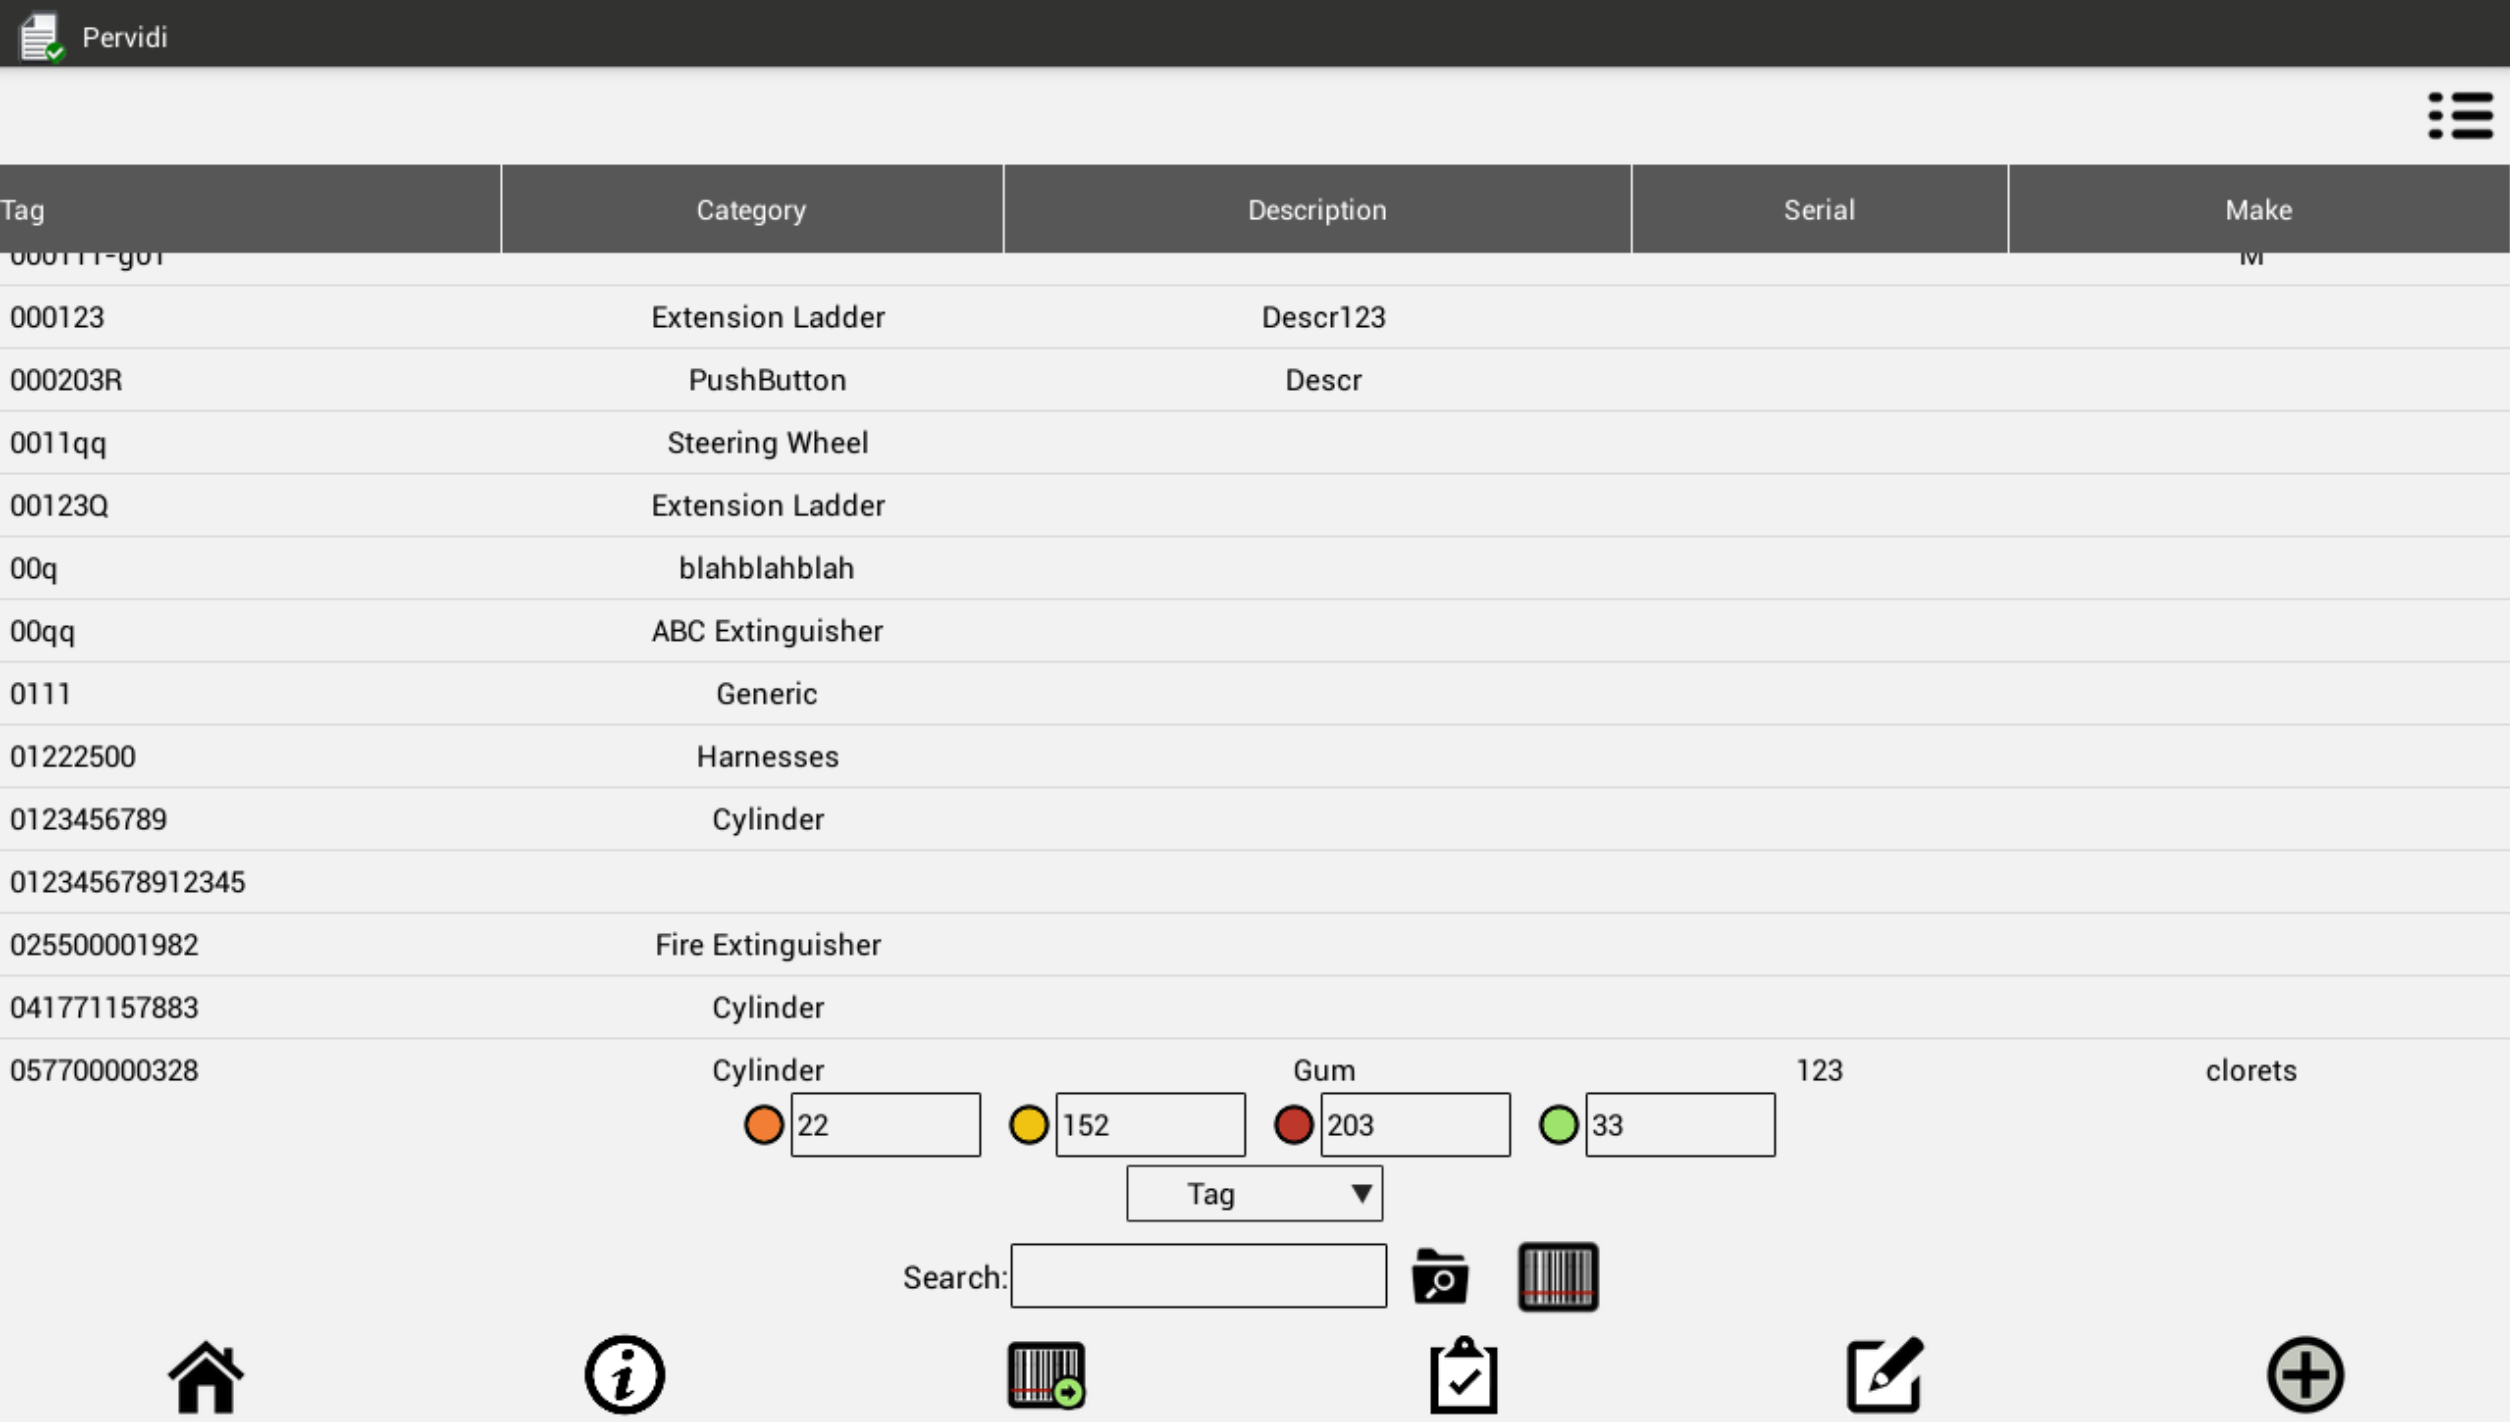 Create checklists for a variety of safety inspections and audits to address specific safety and regulatory needs